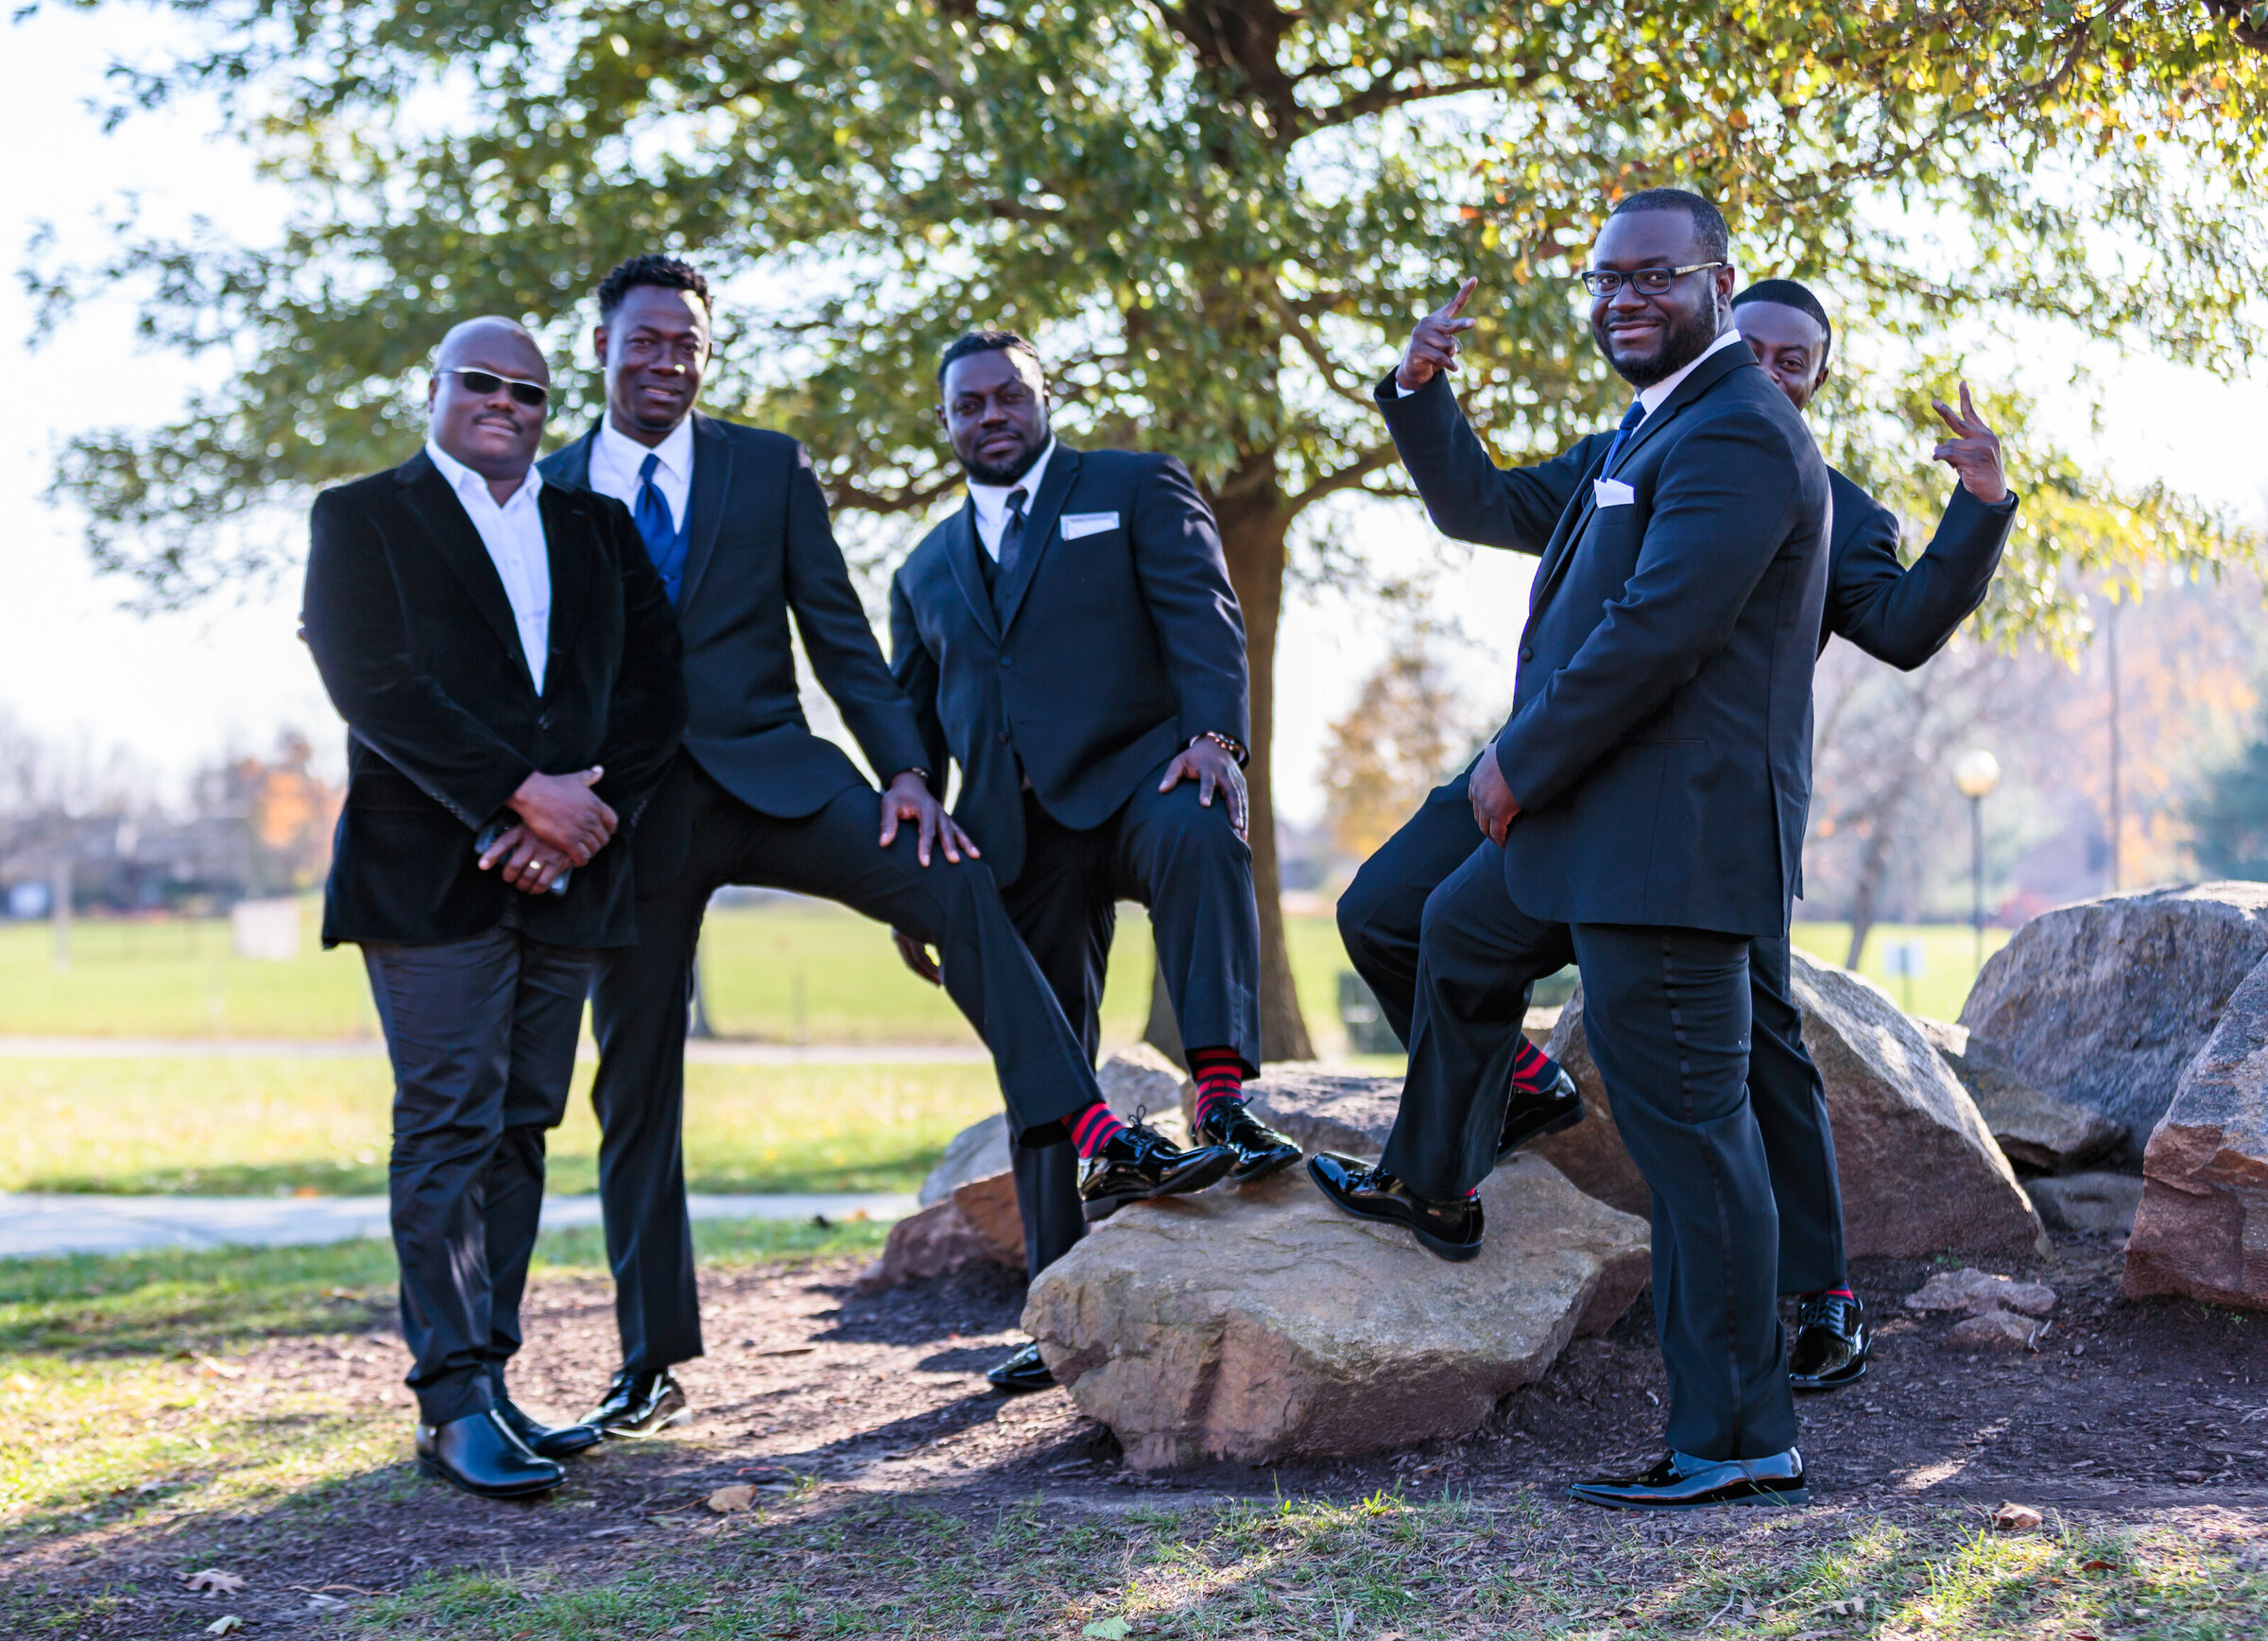 The-Gathering-Place-Columbia-Maryland-Wedding-Planning